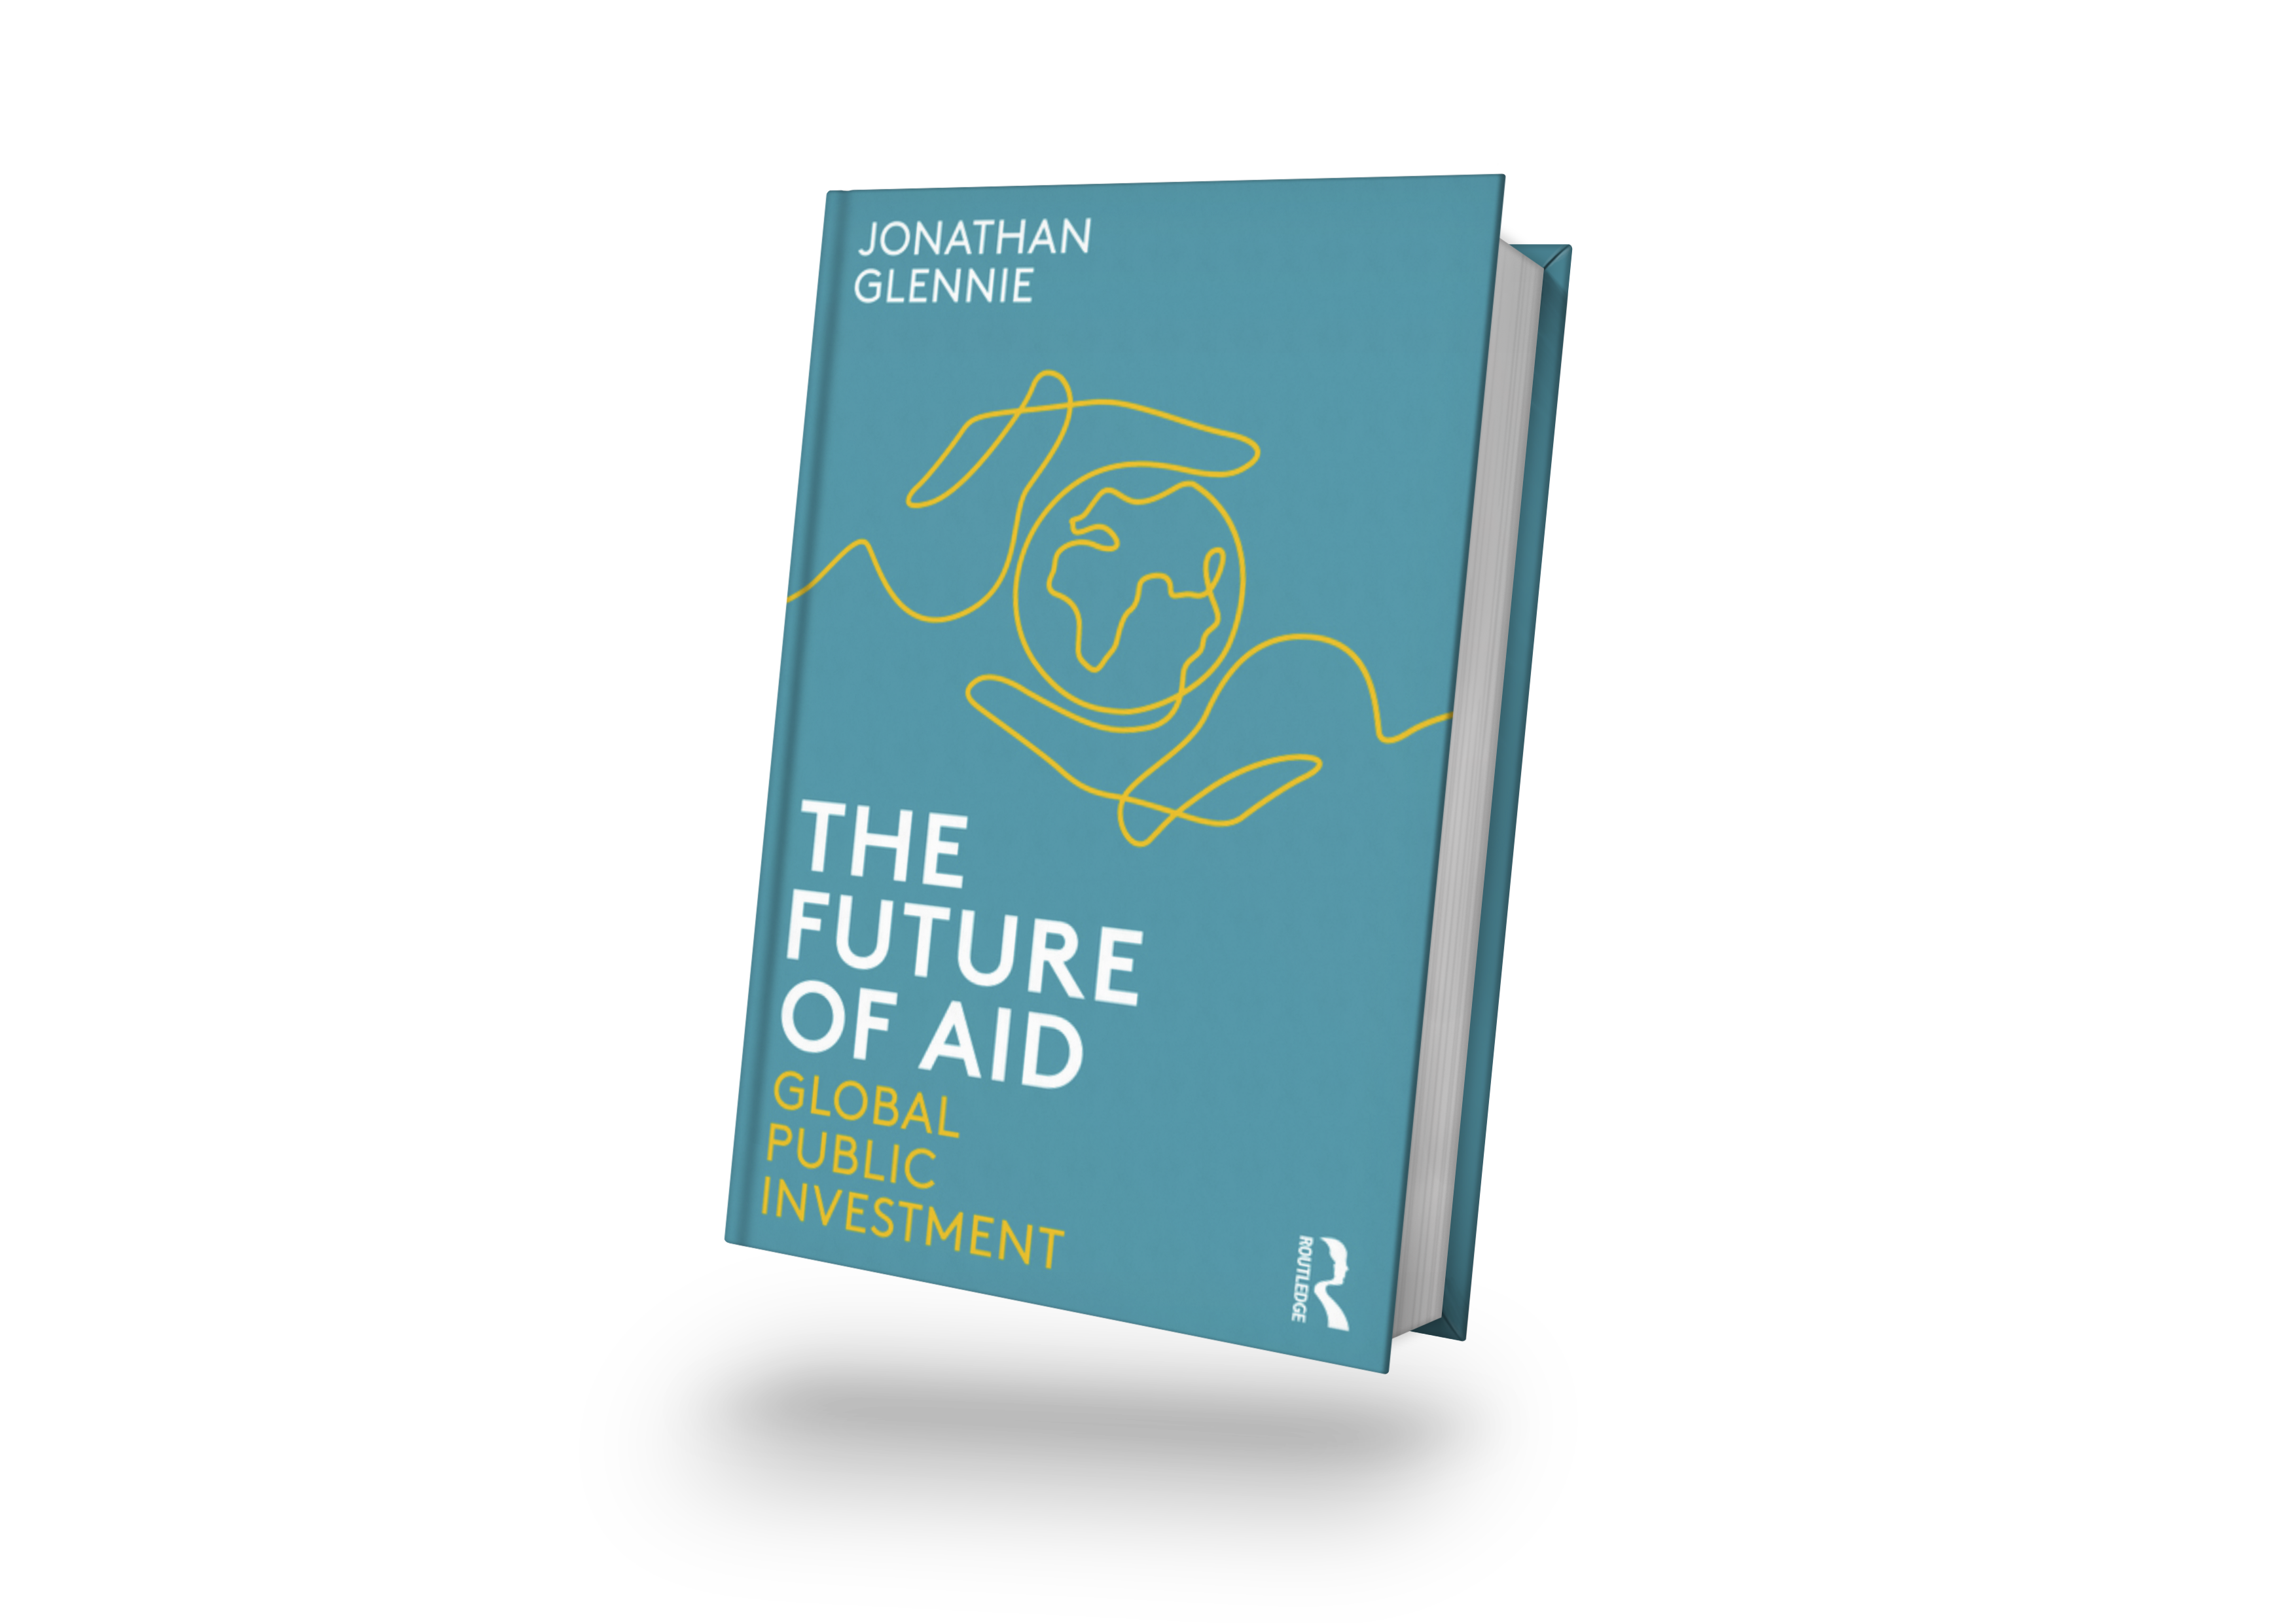 Jonathan Glennie publishes book on The Future of Aid, Global Public Investment